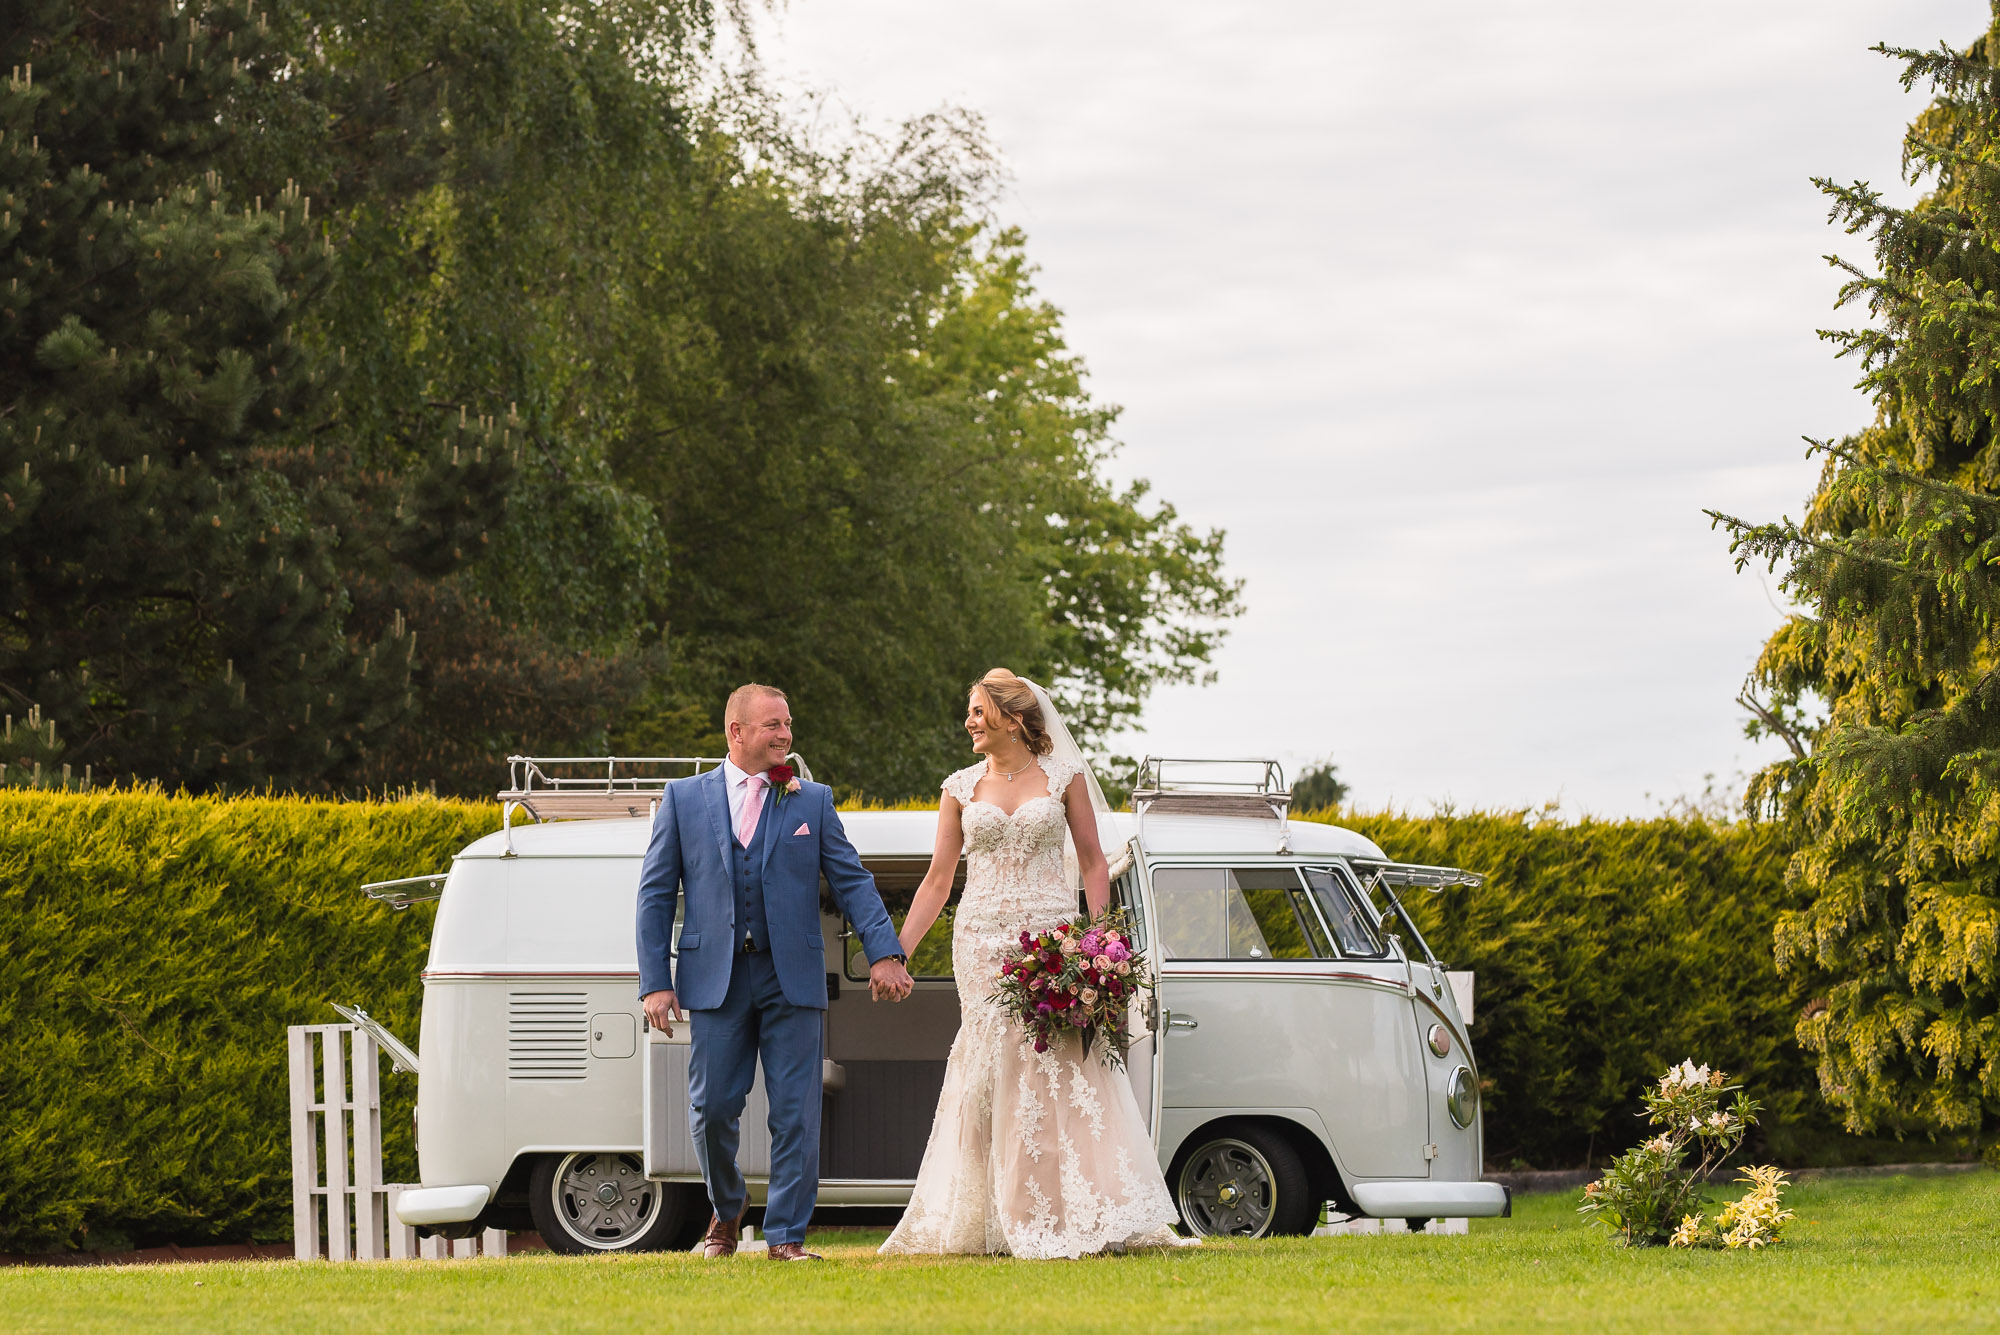 Newly weds and Phoebe the splitty camper